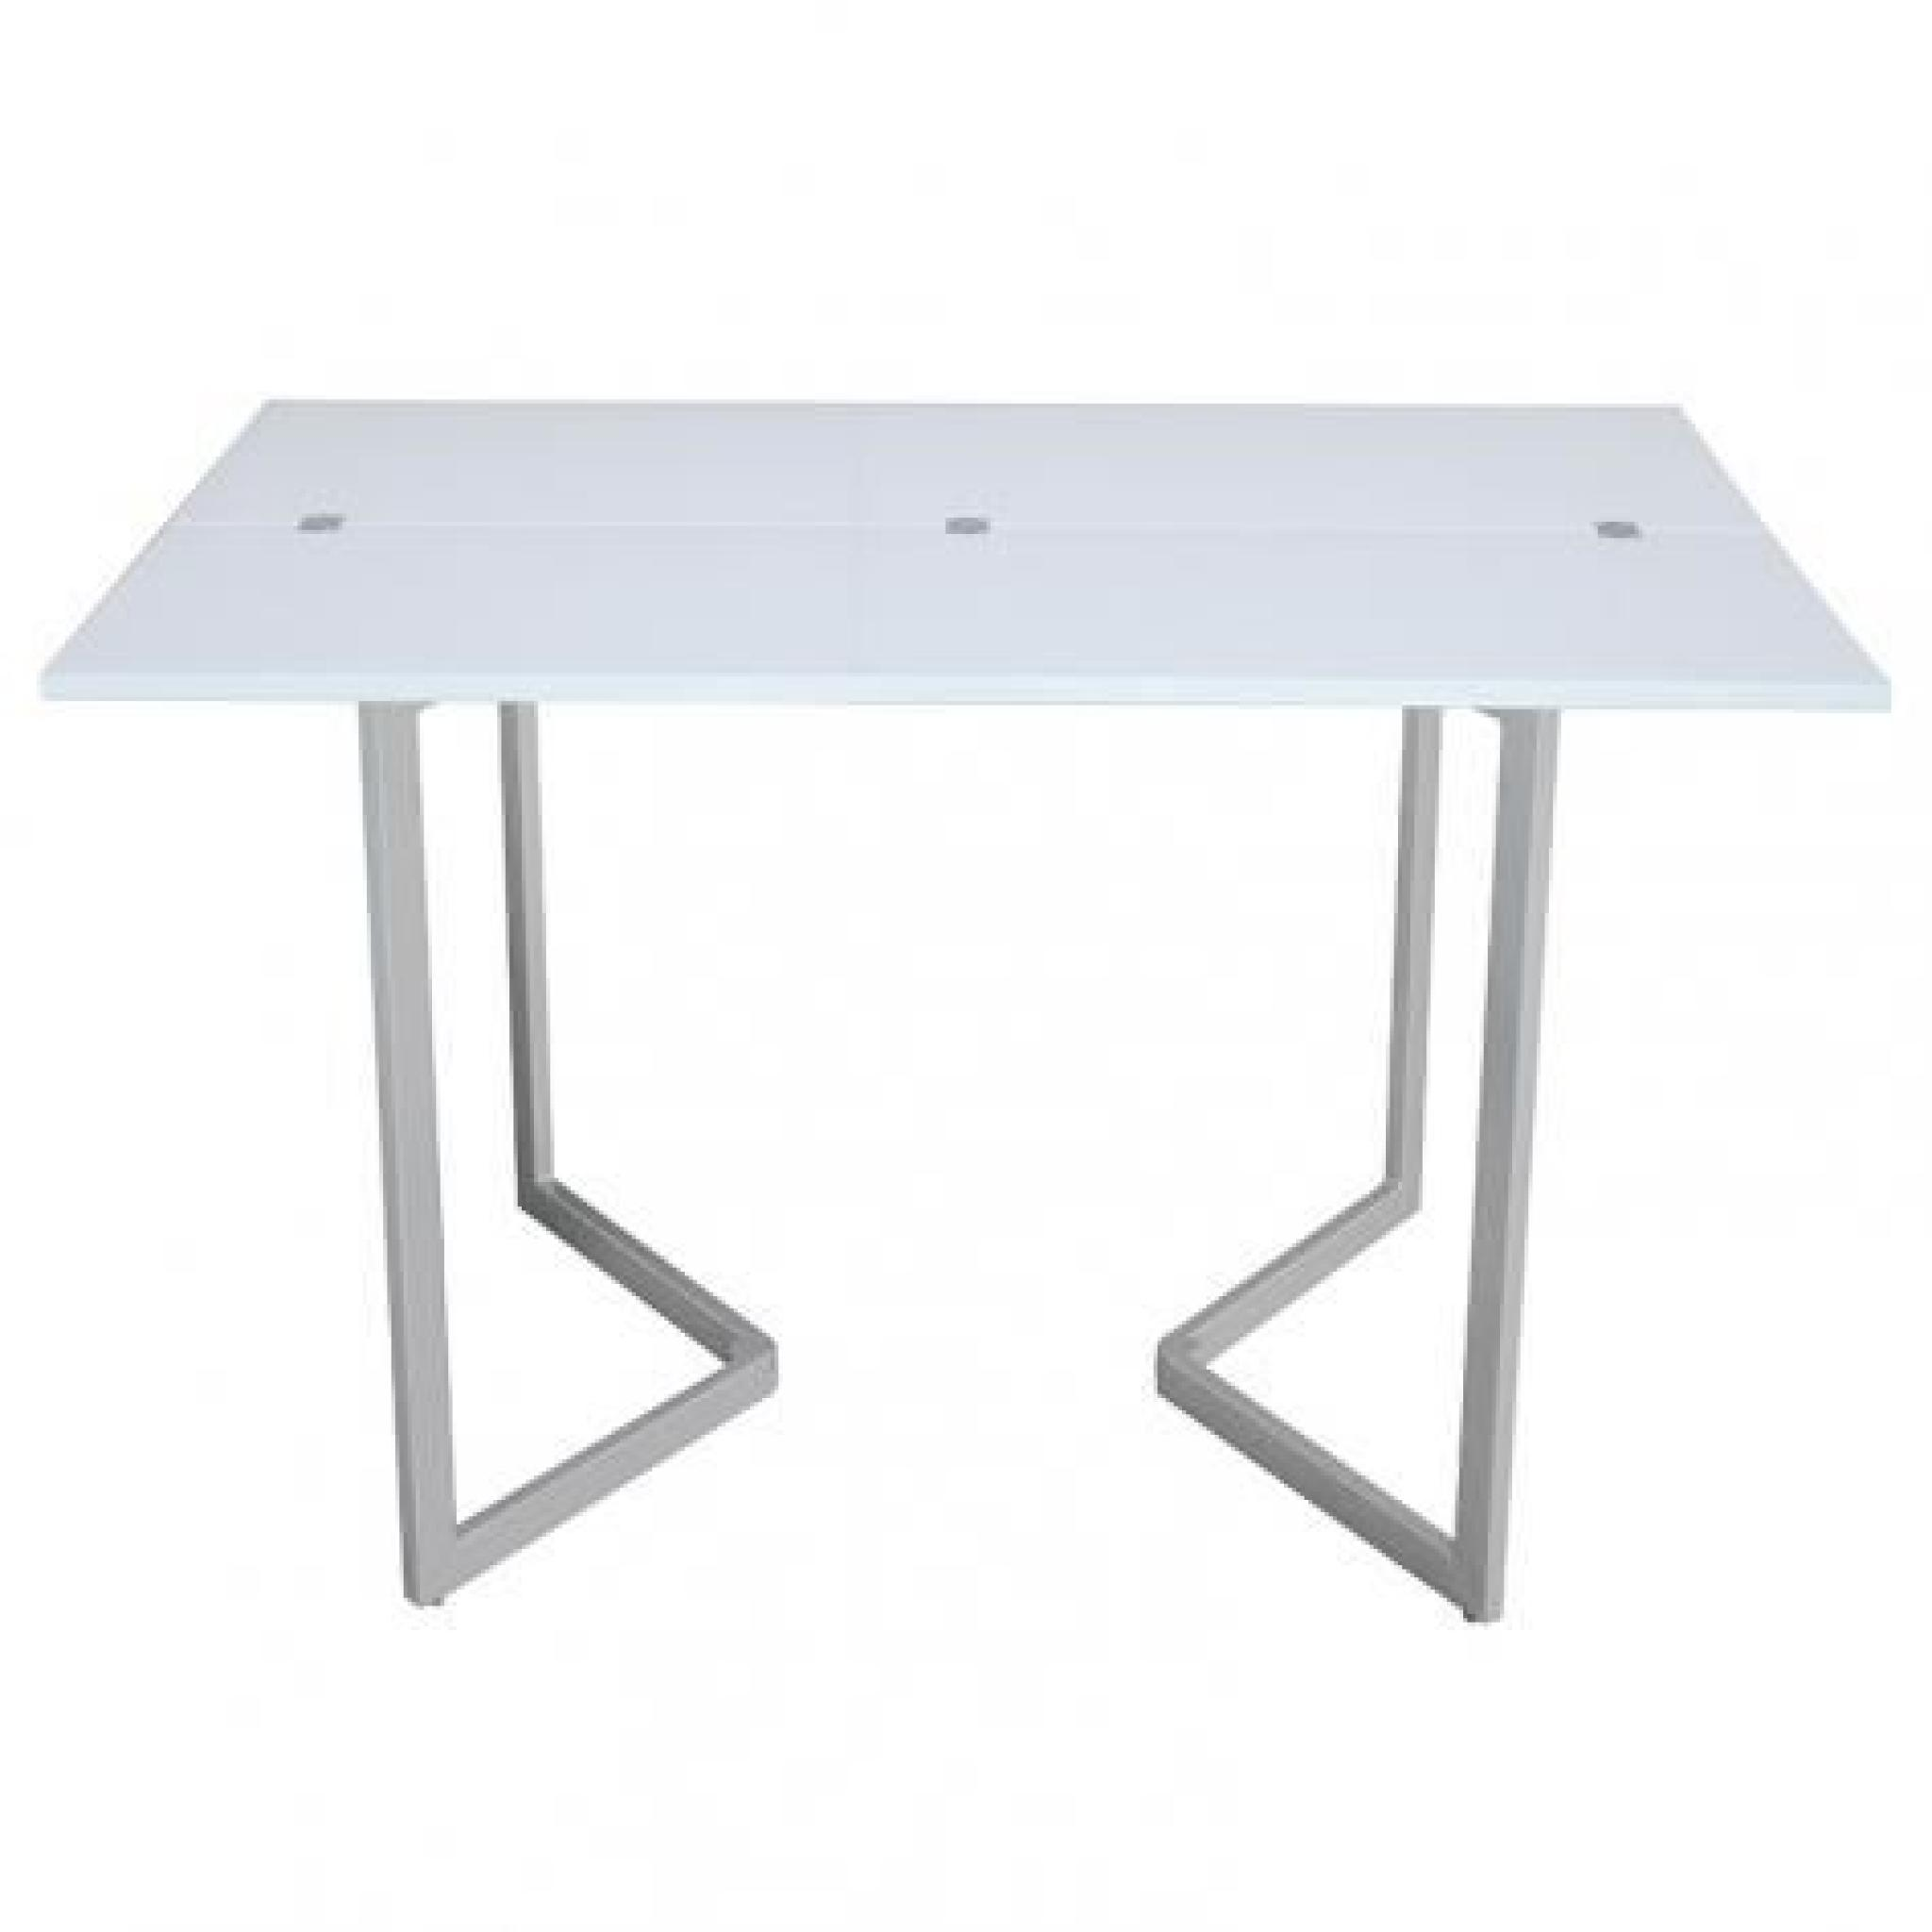 Table console extensible habitat finest table console for Table console haute extensible